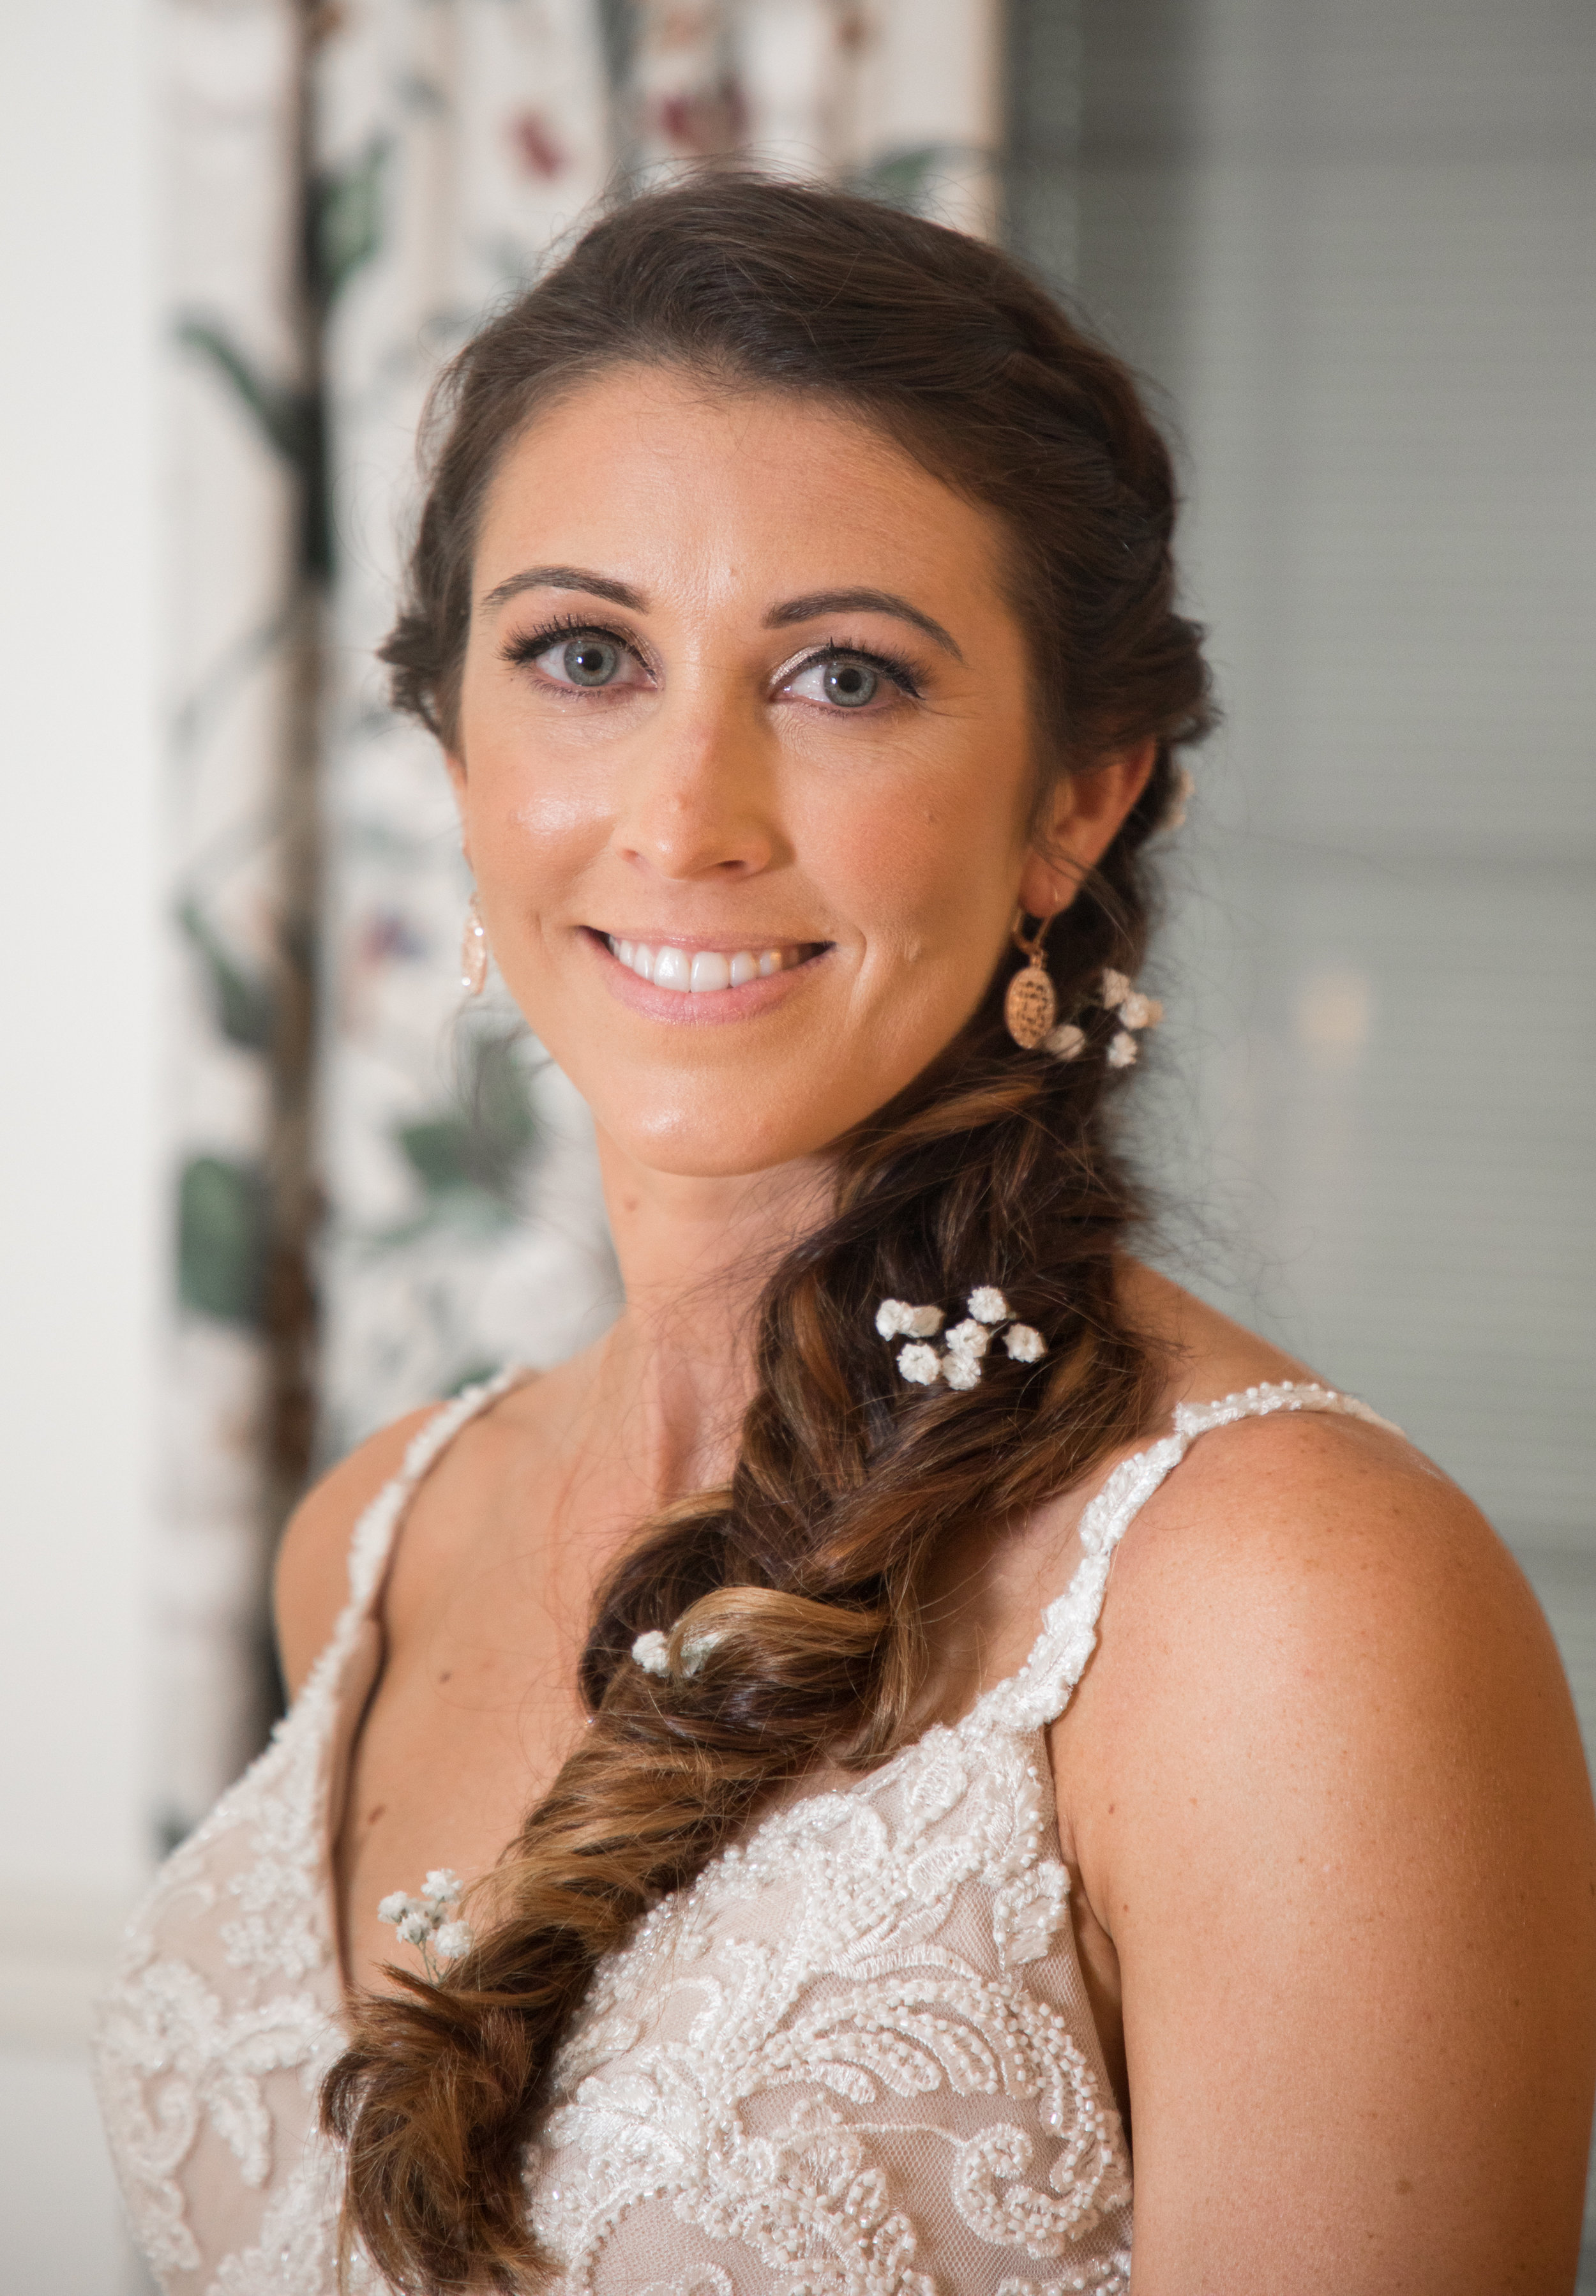 Babies breath flowers adorned Carri's hair which went perfectly with her nude wedding gown.